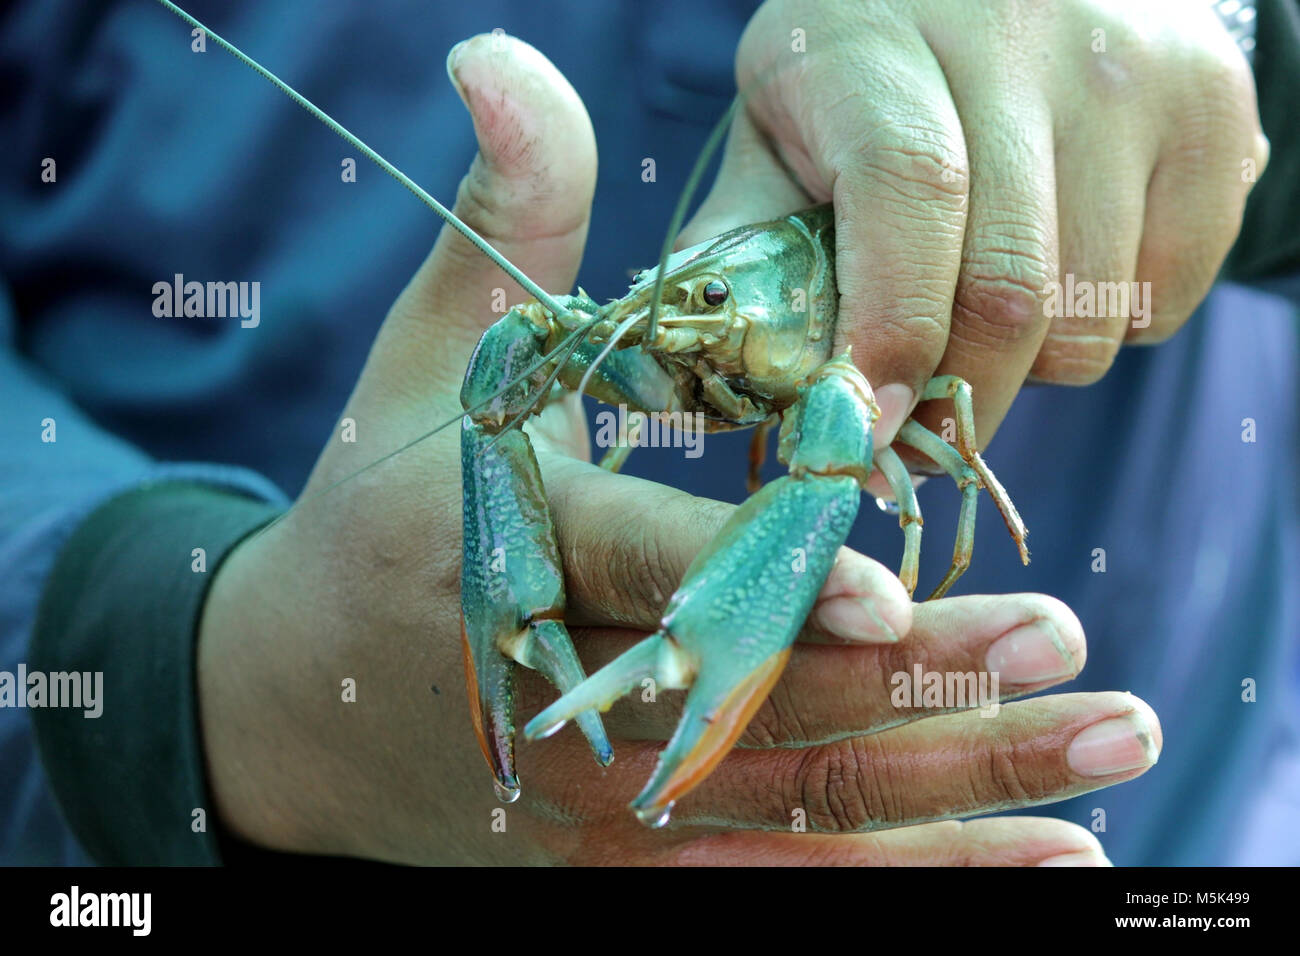 Alive Prawn Or Shrimp On A Man Hand Stock Photo Alamy